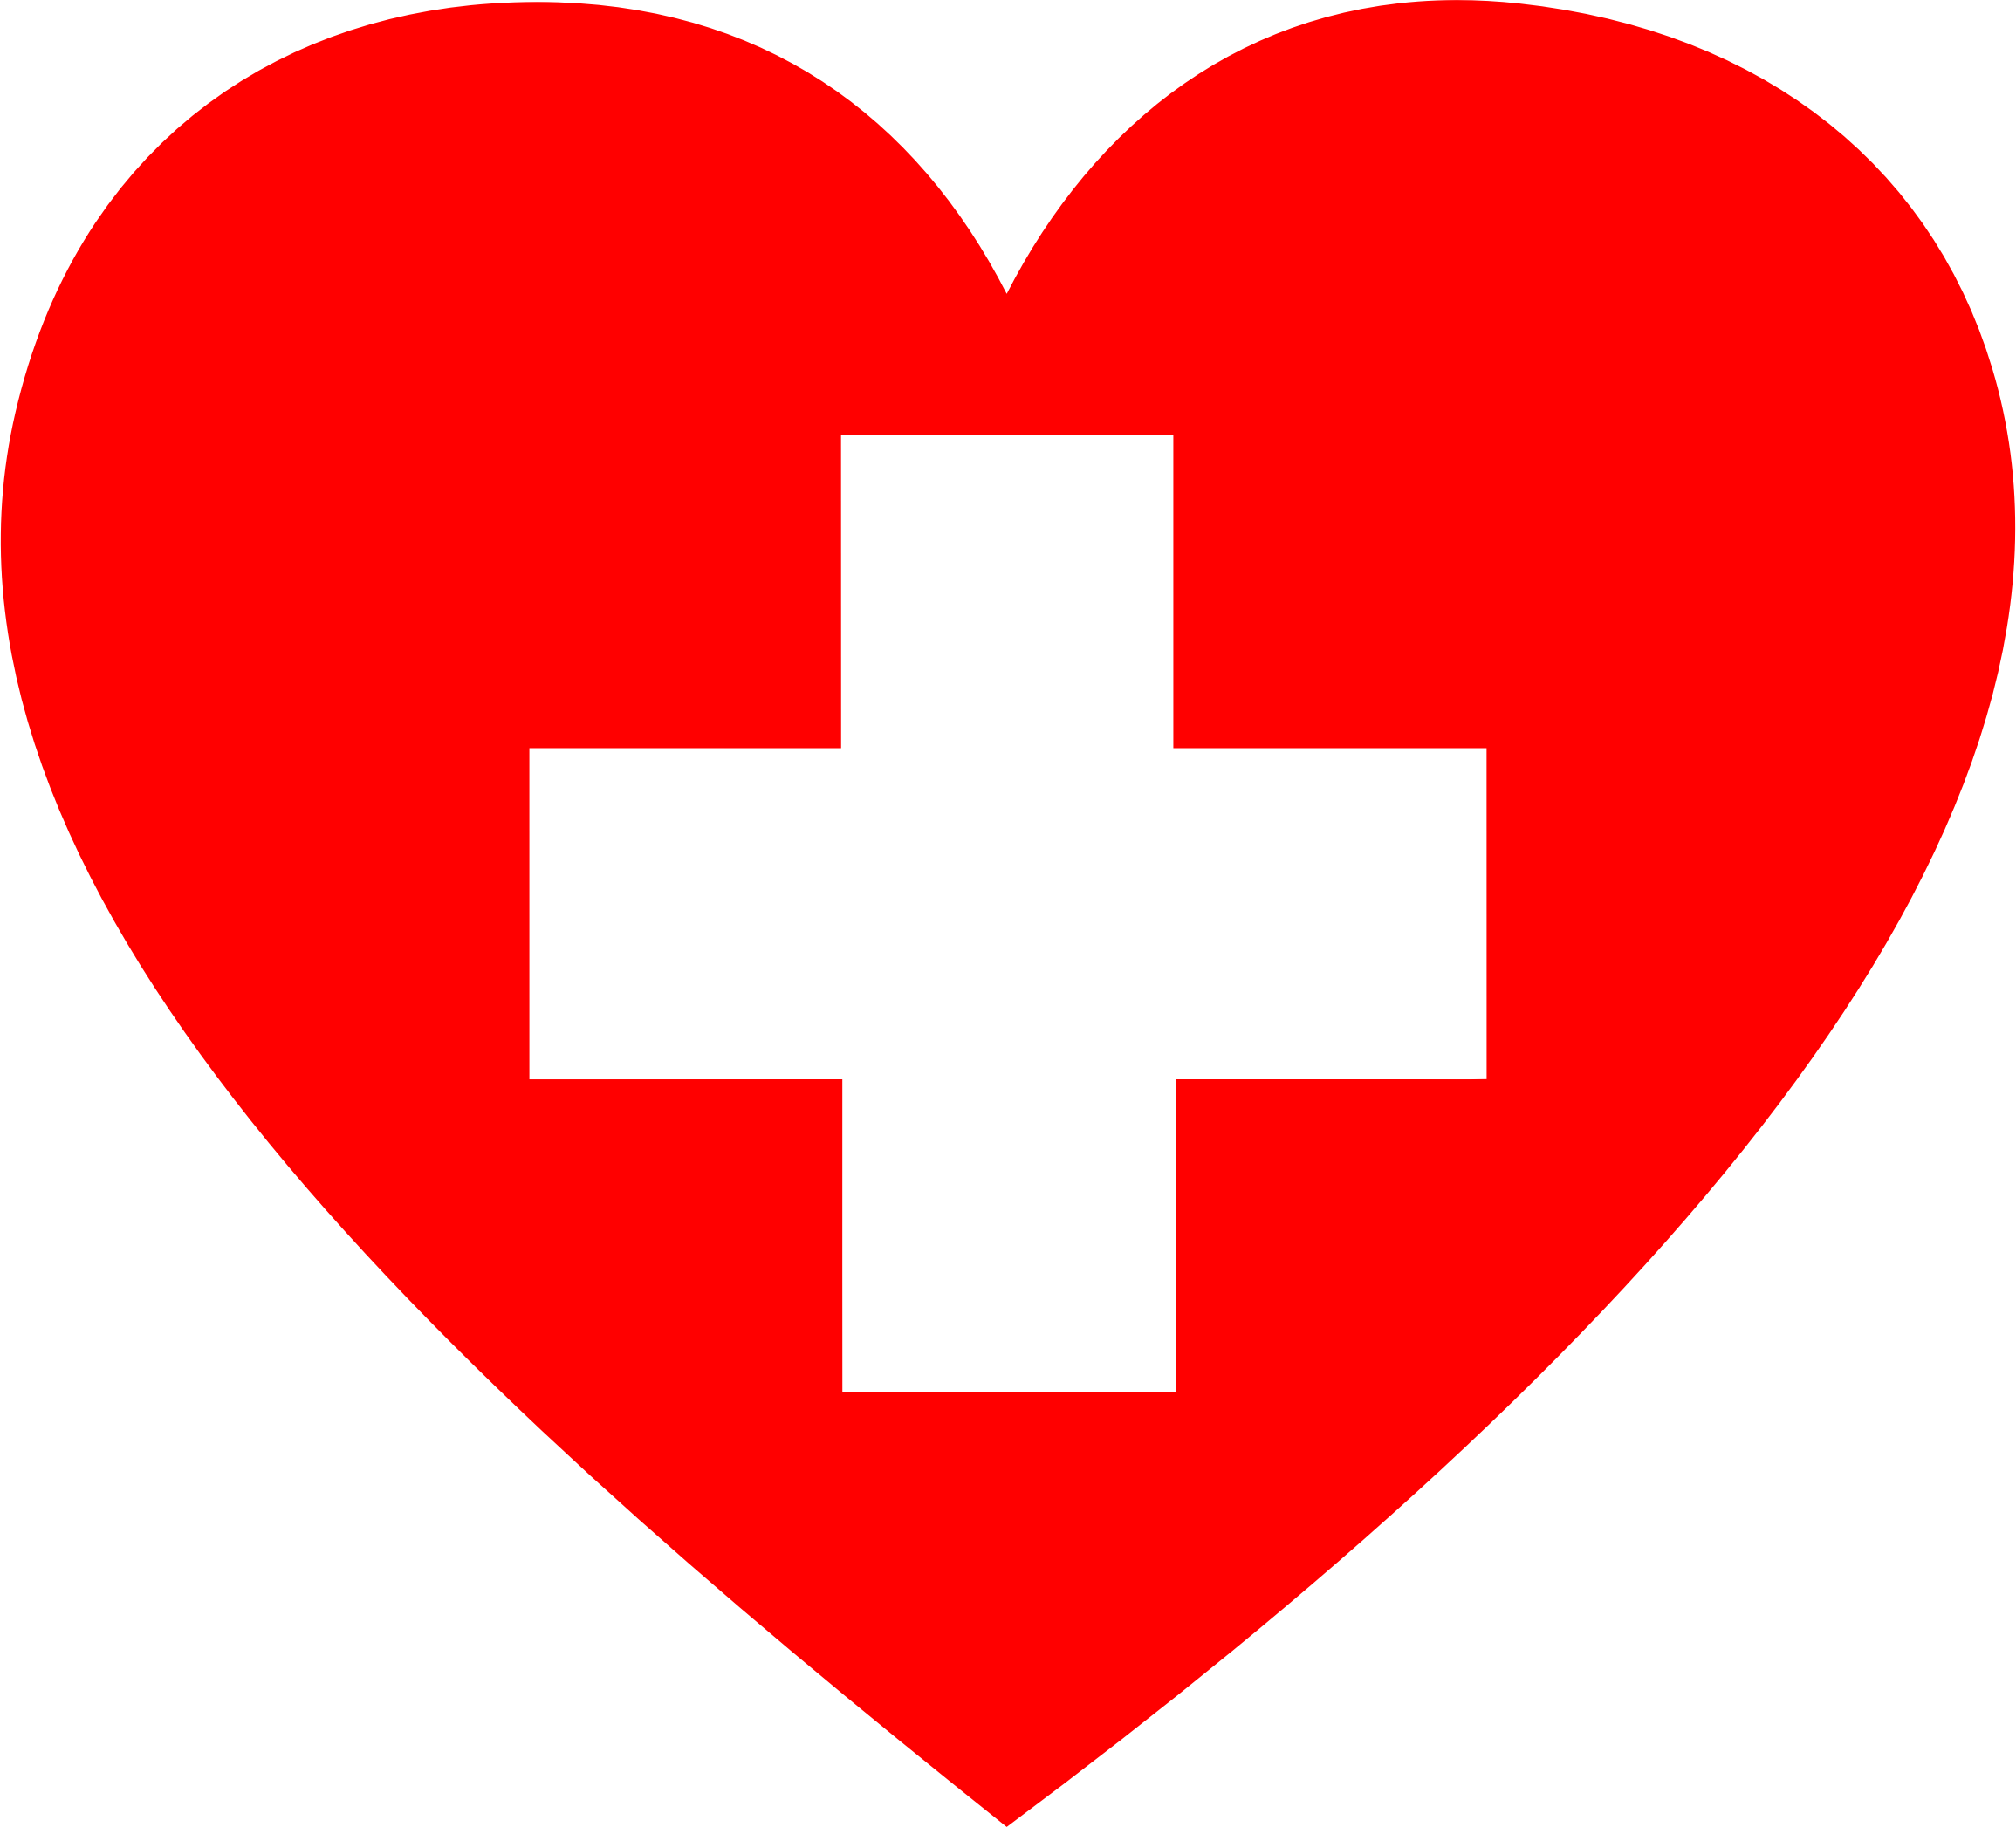 image Heart big image png. First aid clipart